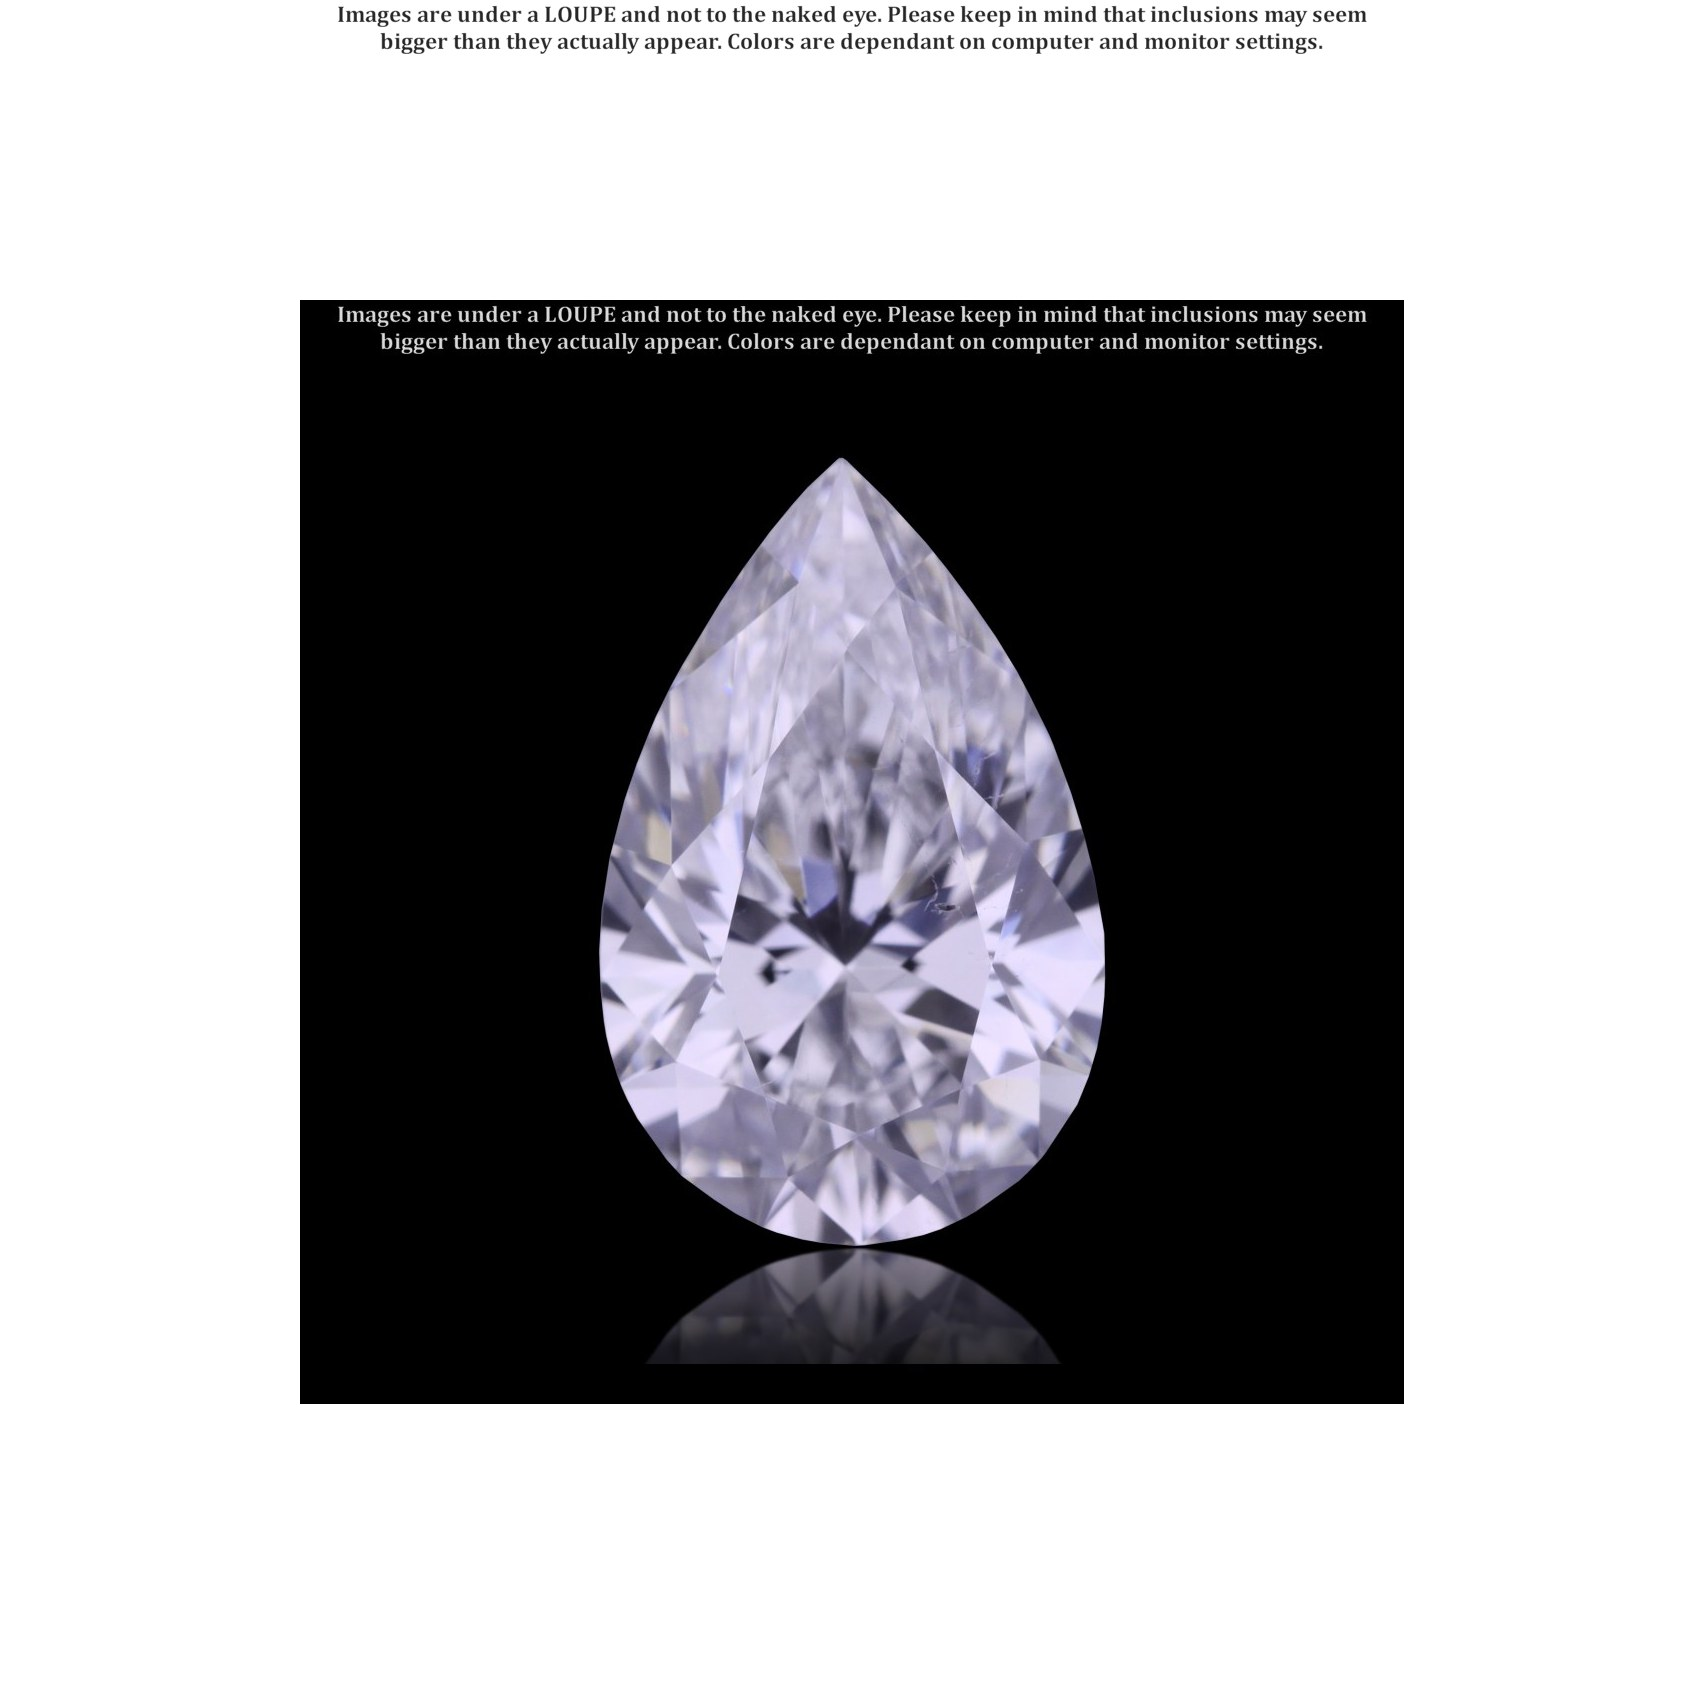 J Mullins Jewelry & Gifts LLC - Diamond Image - .00633